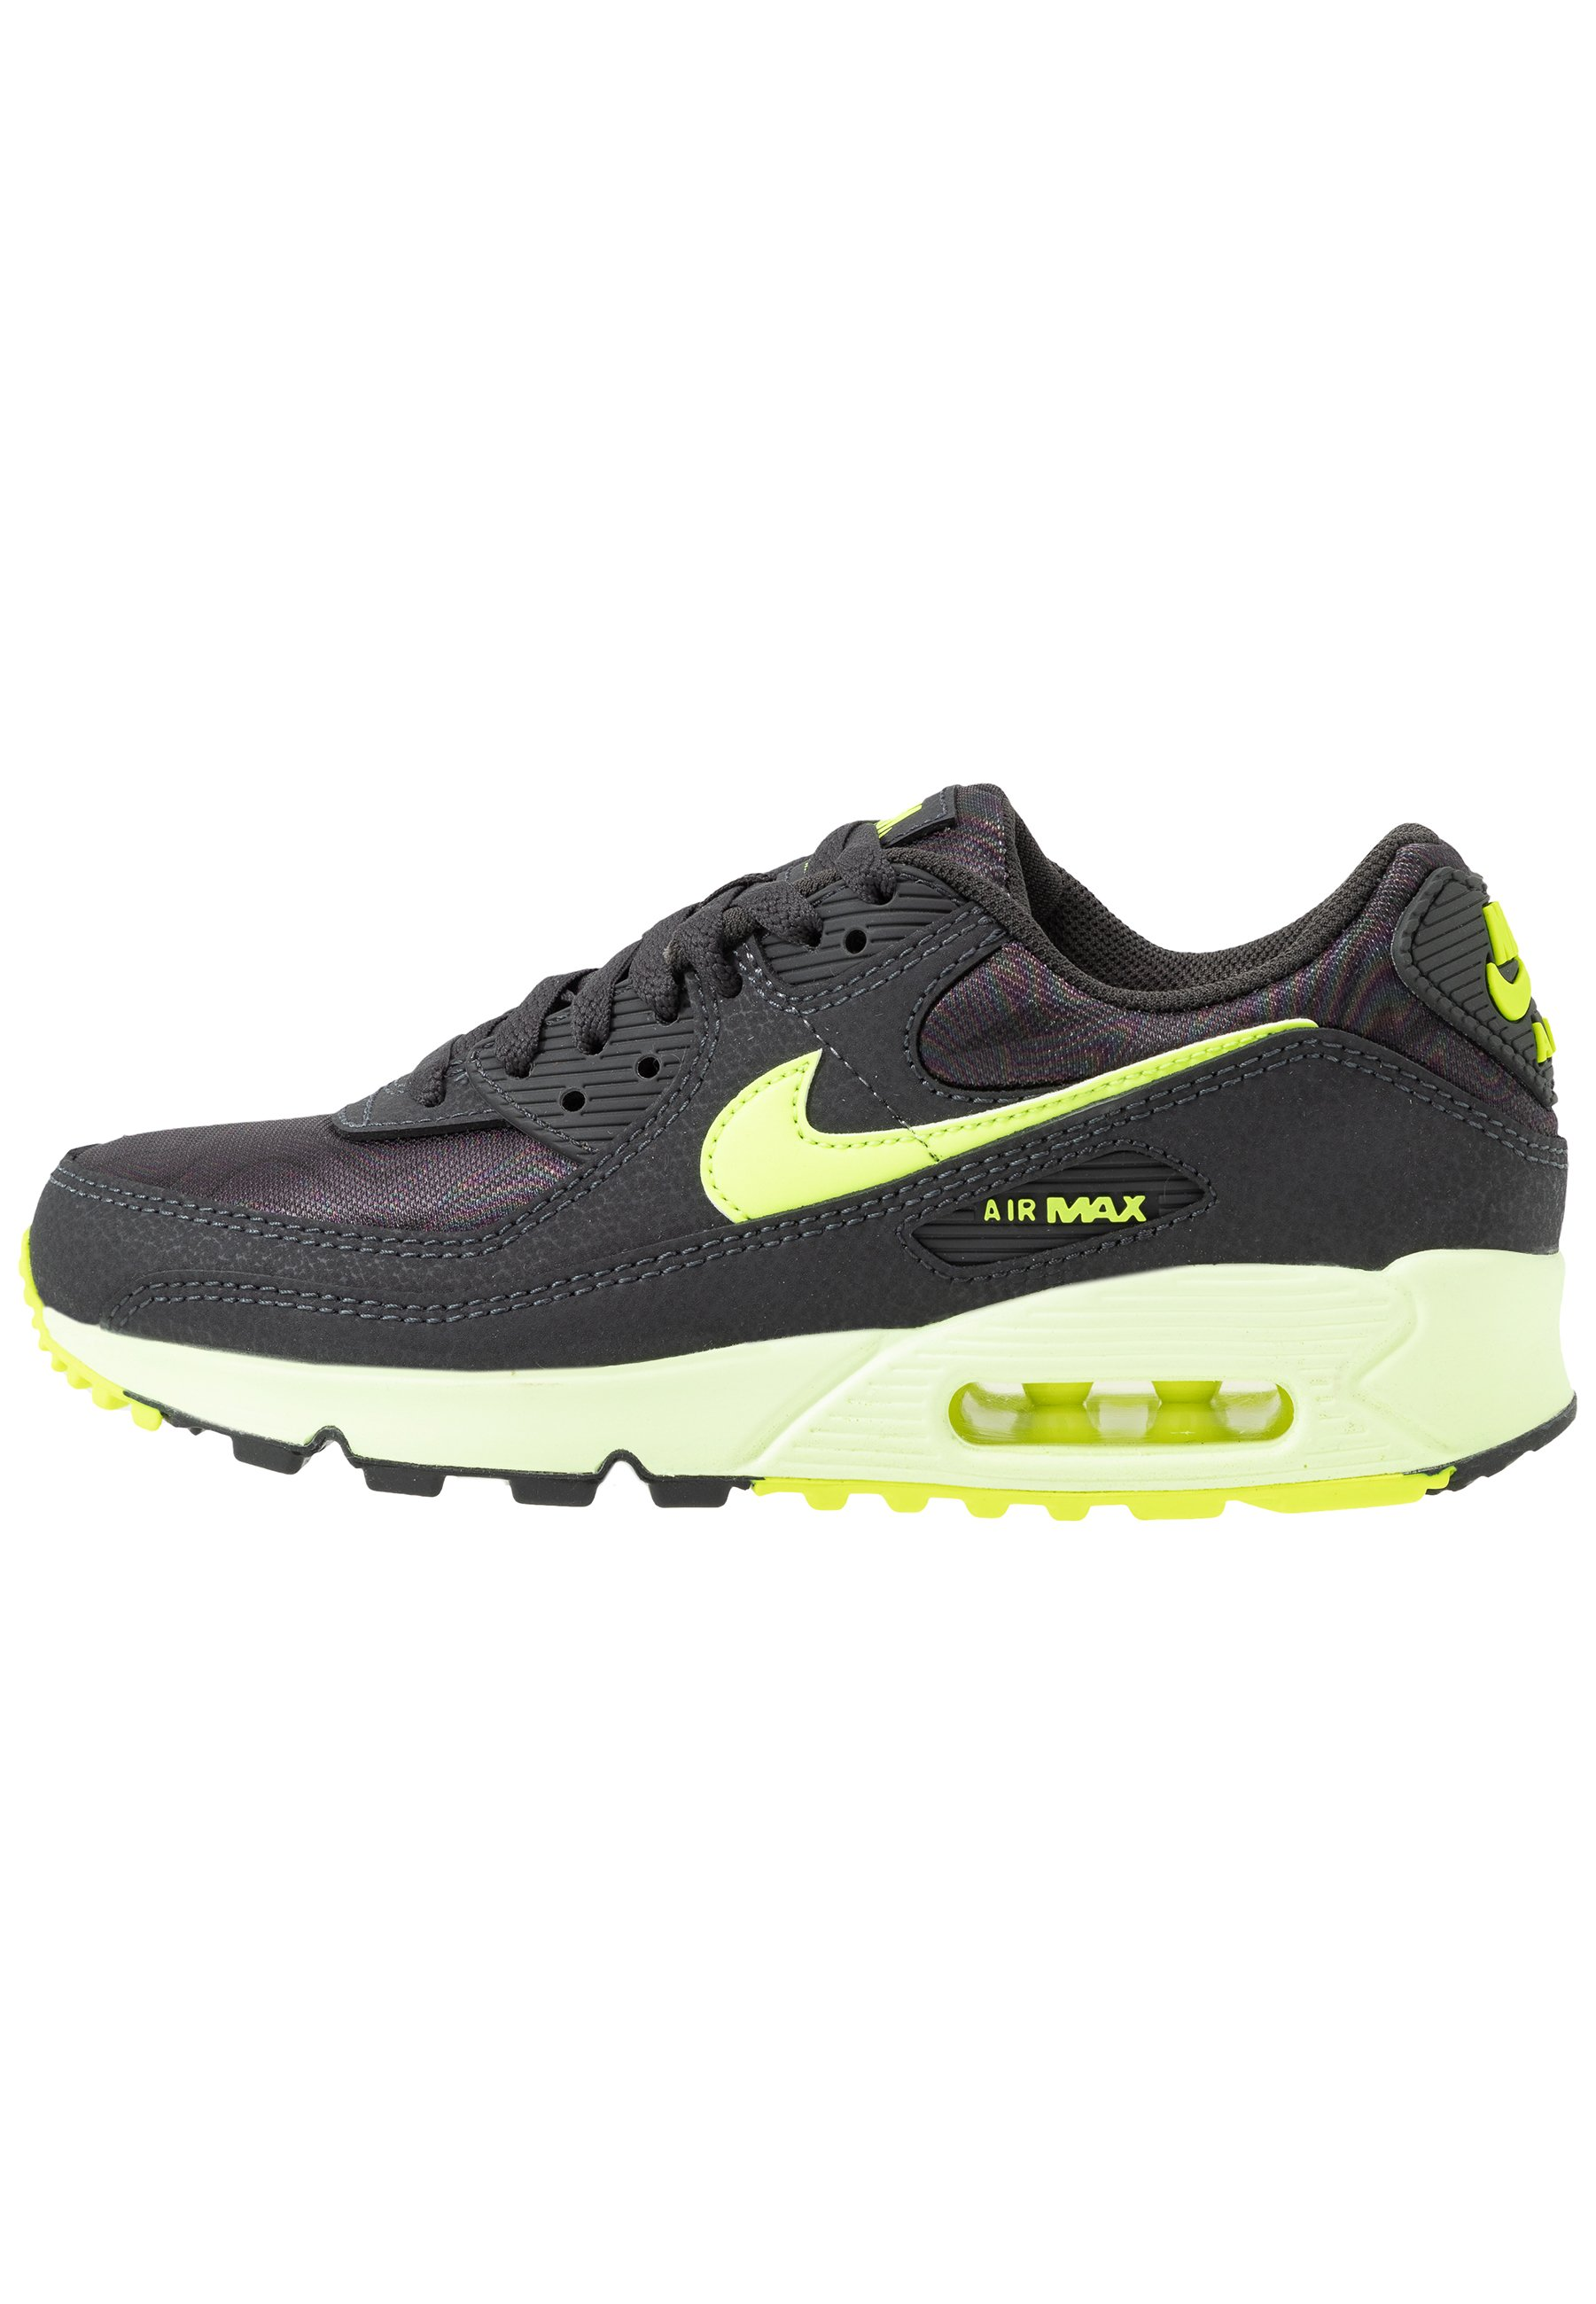 AIR MAX 90 Sneakers laag dark smoke greyvoltbarely volt